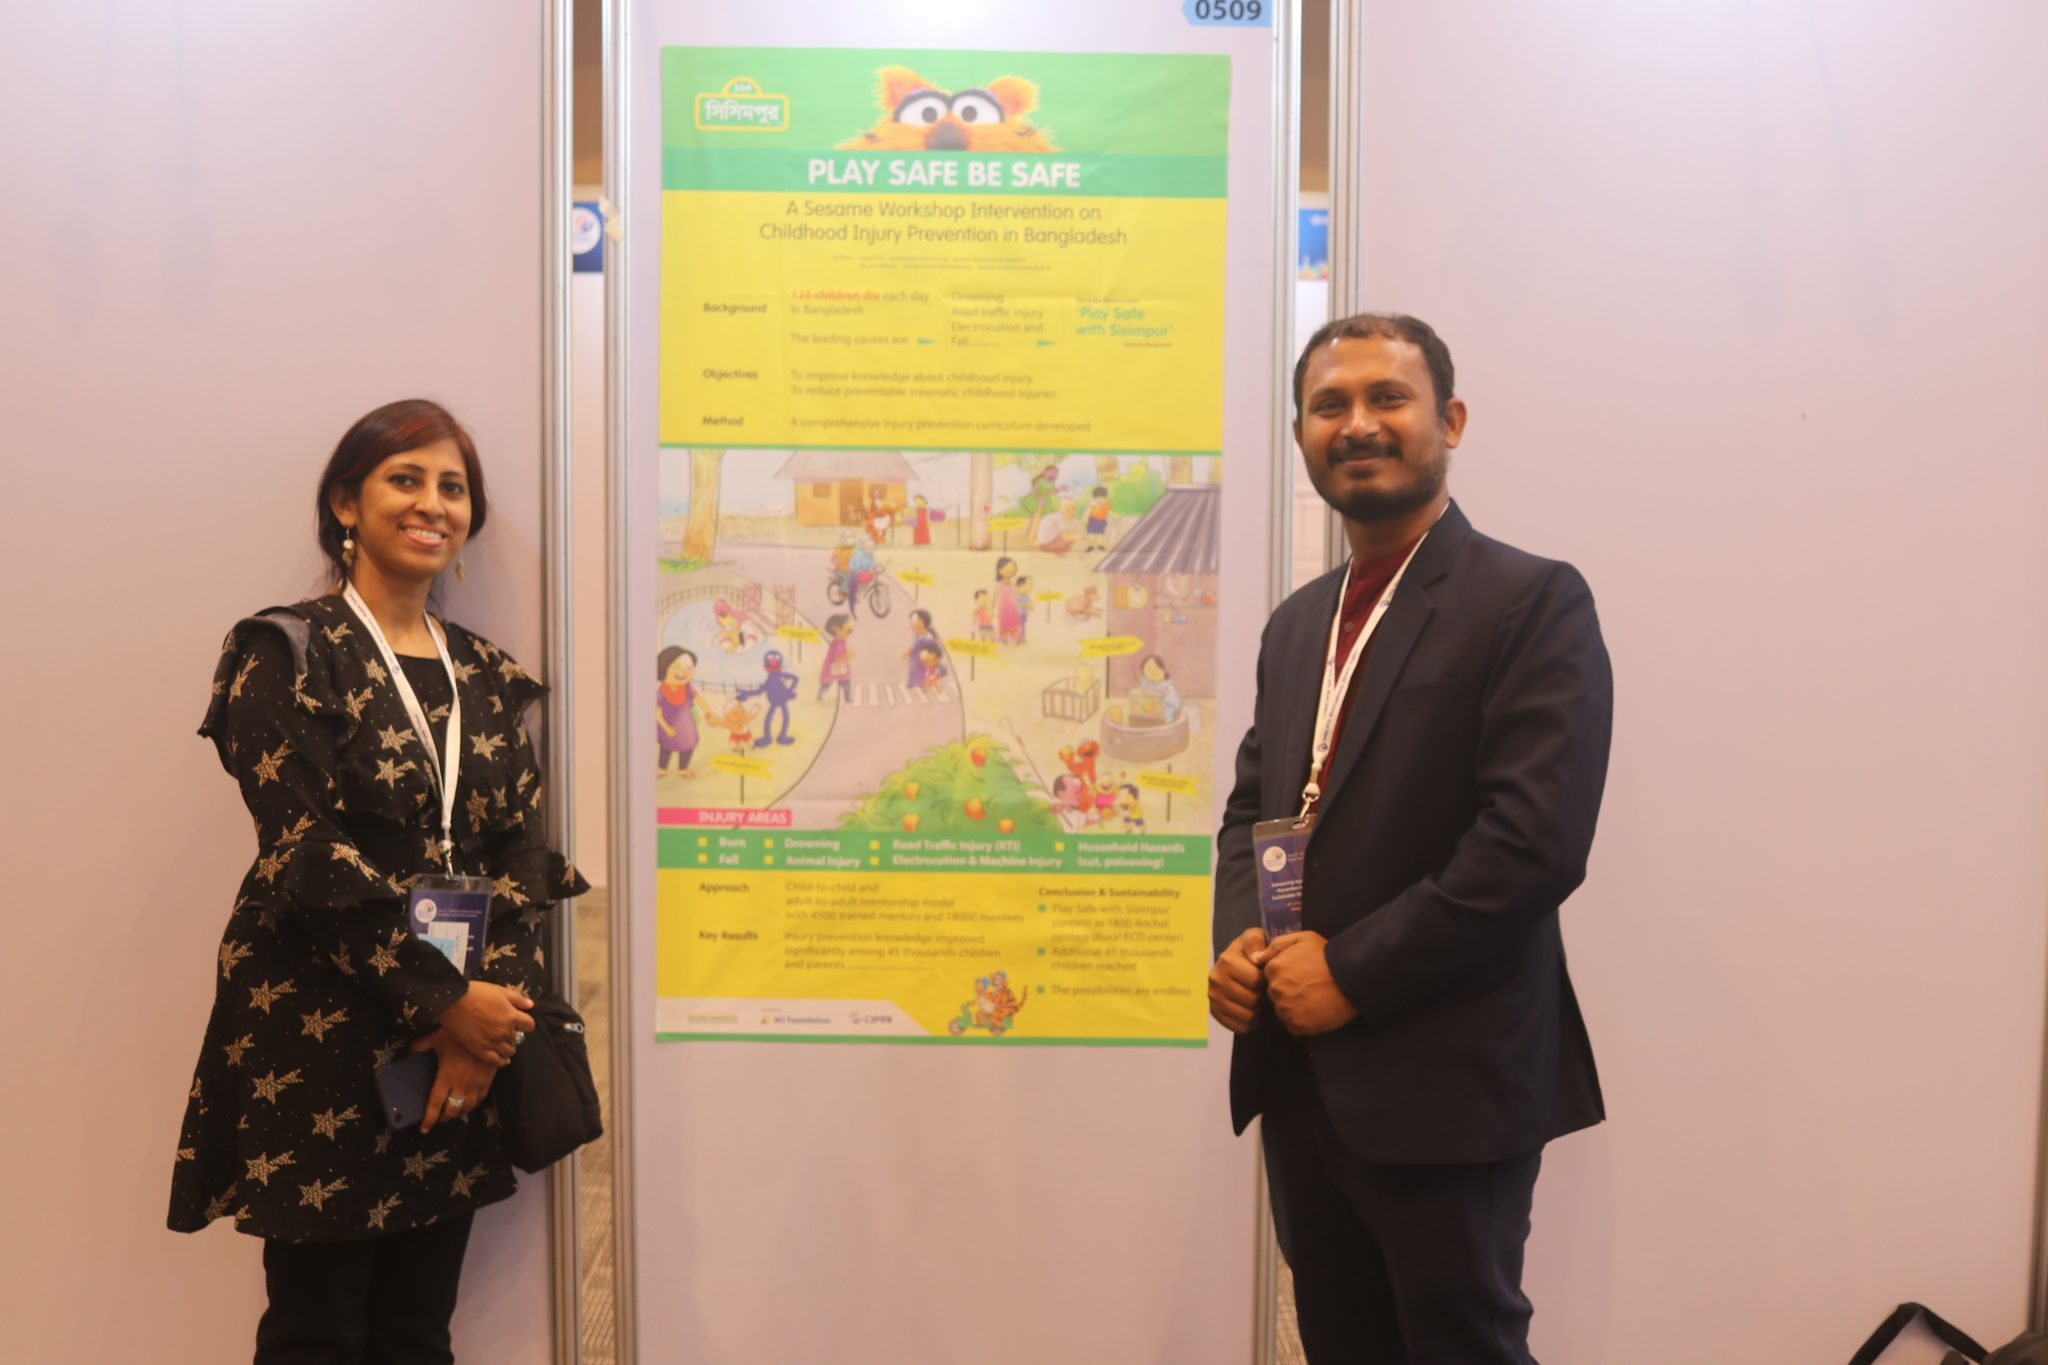 Sesame Workshop presents Play Safe poster at Safety 2018